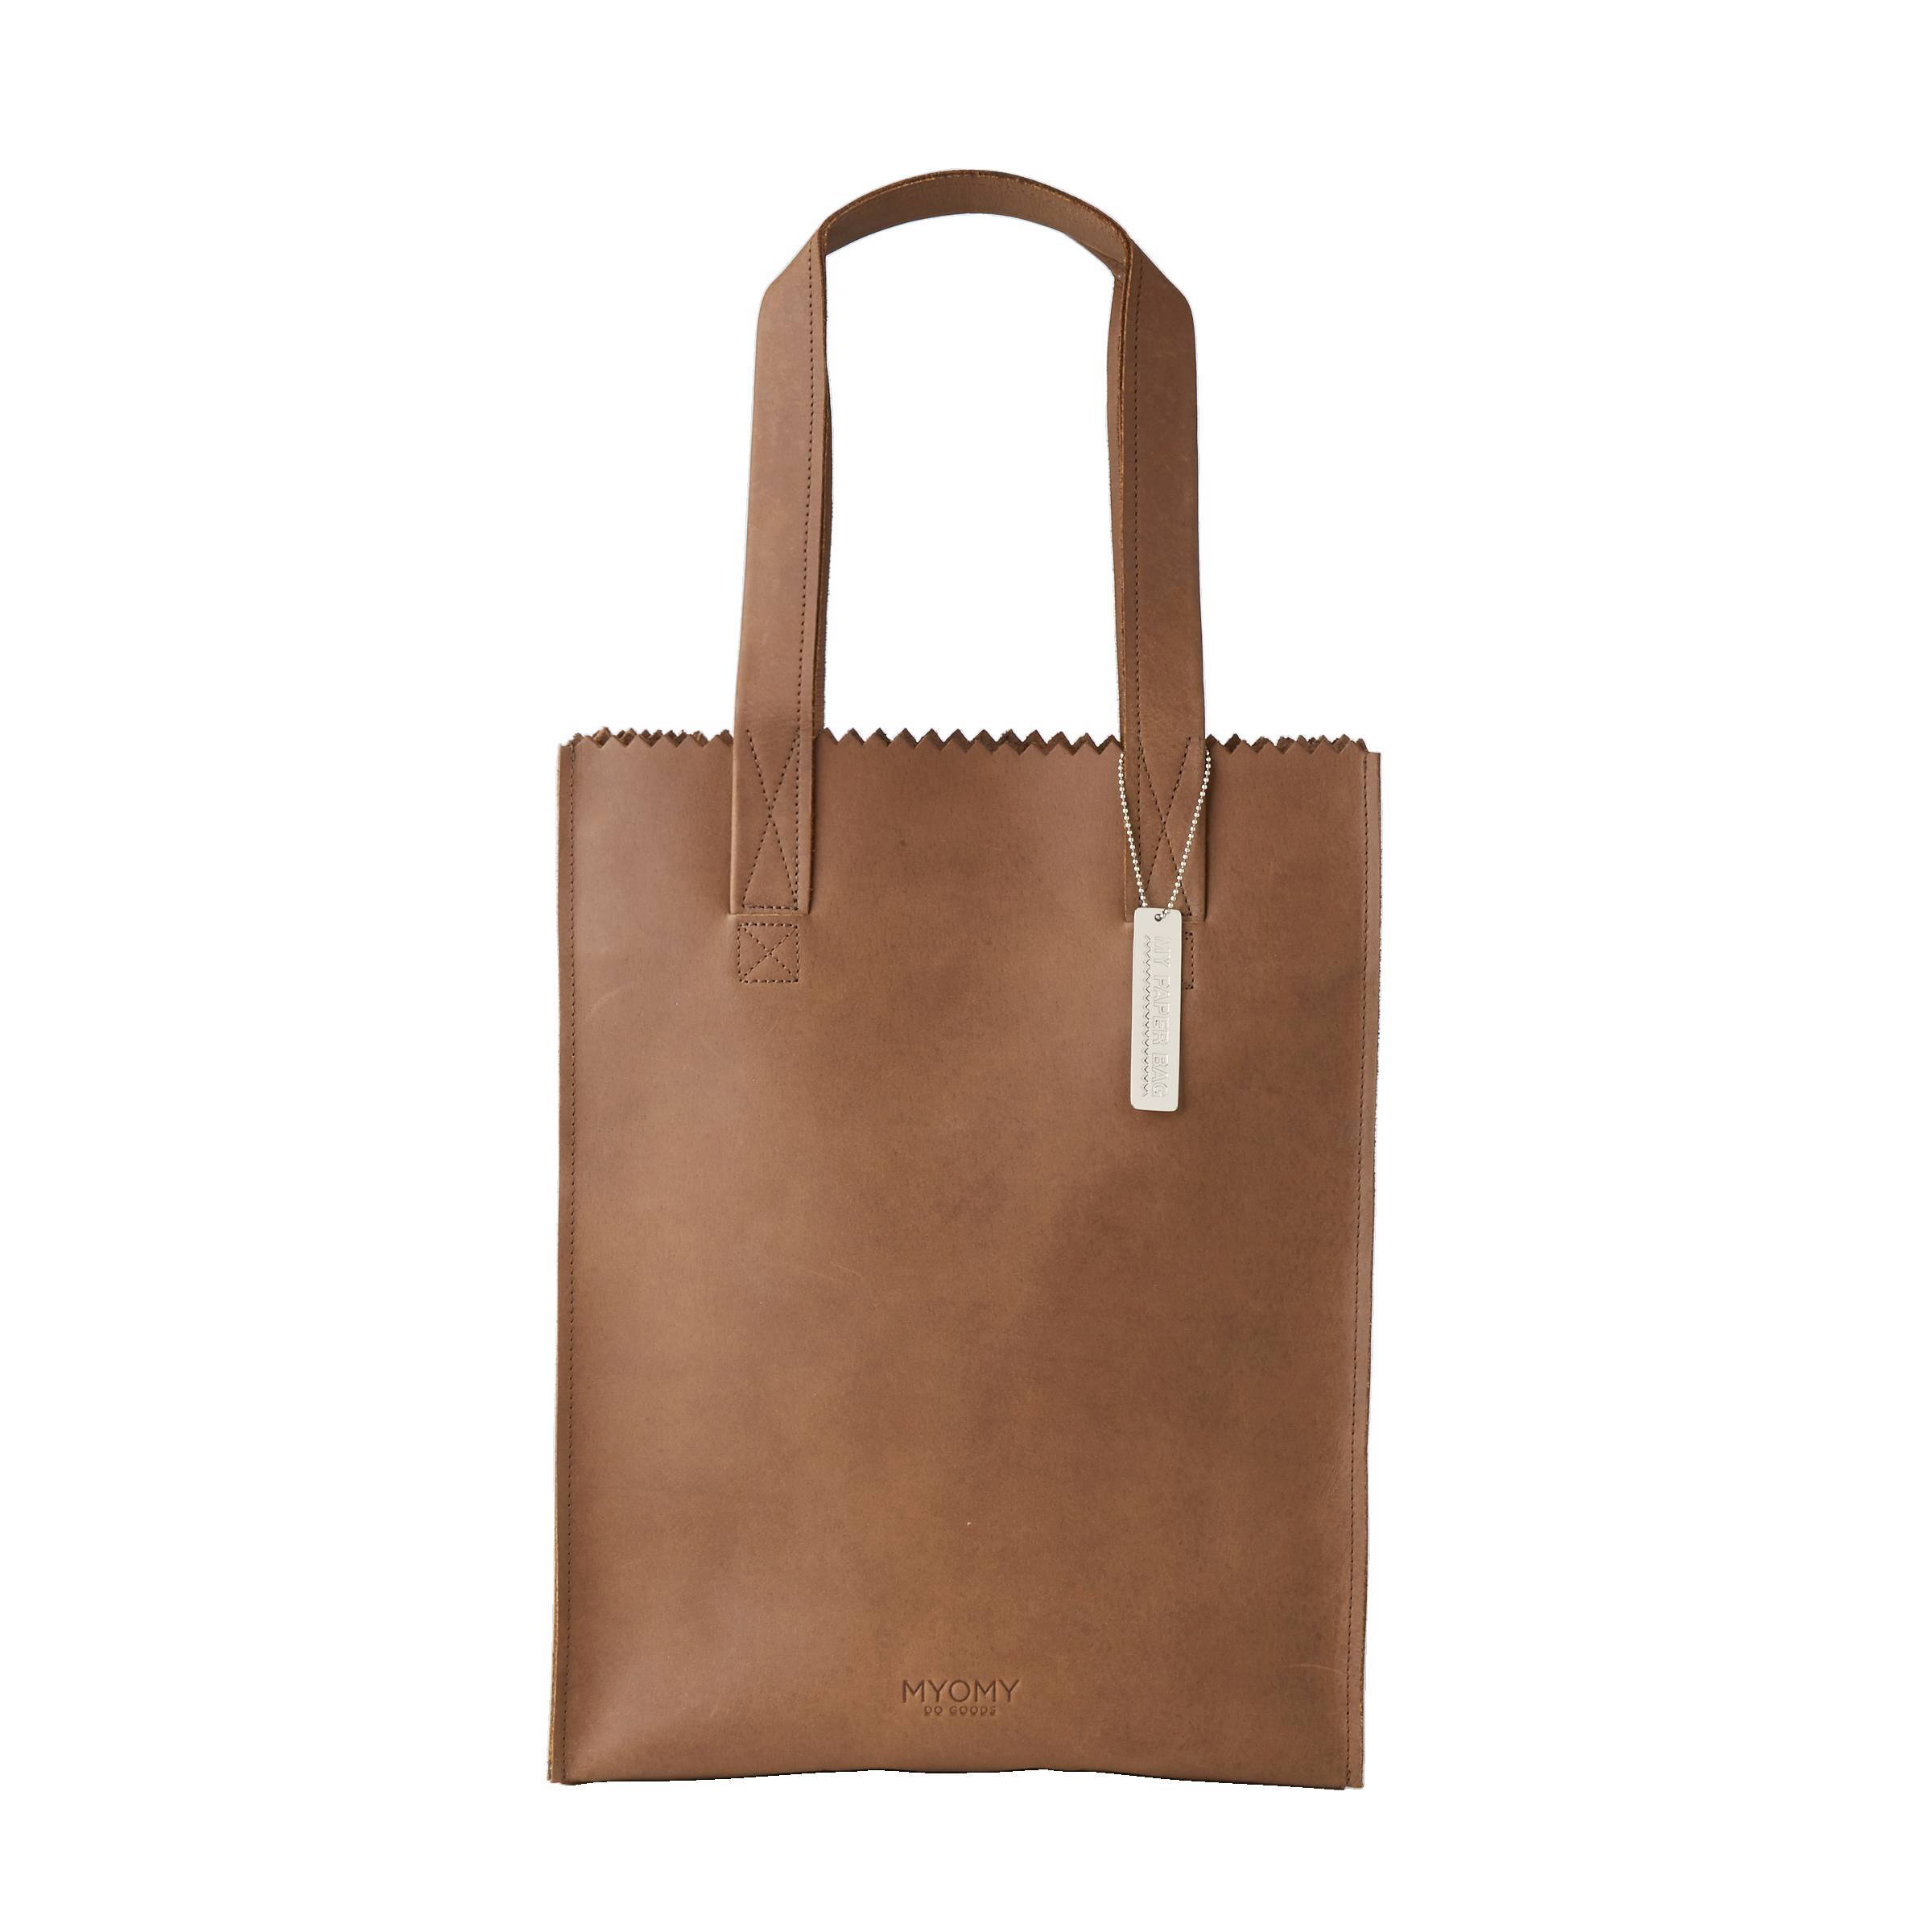 myomy my paper bag long handle zip leren tas bruin